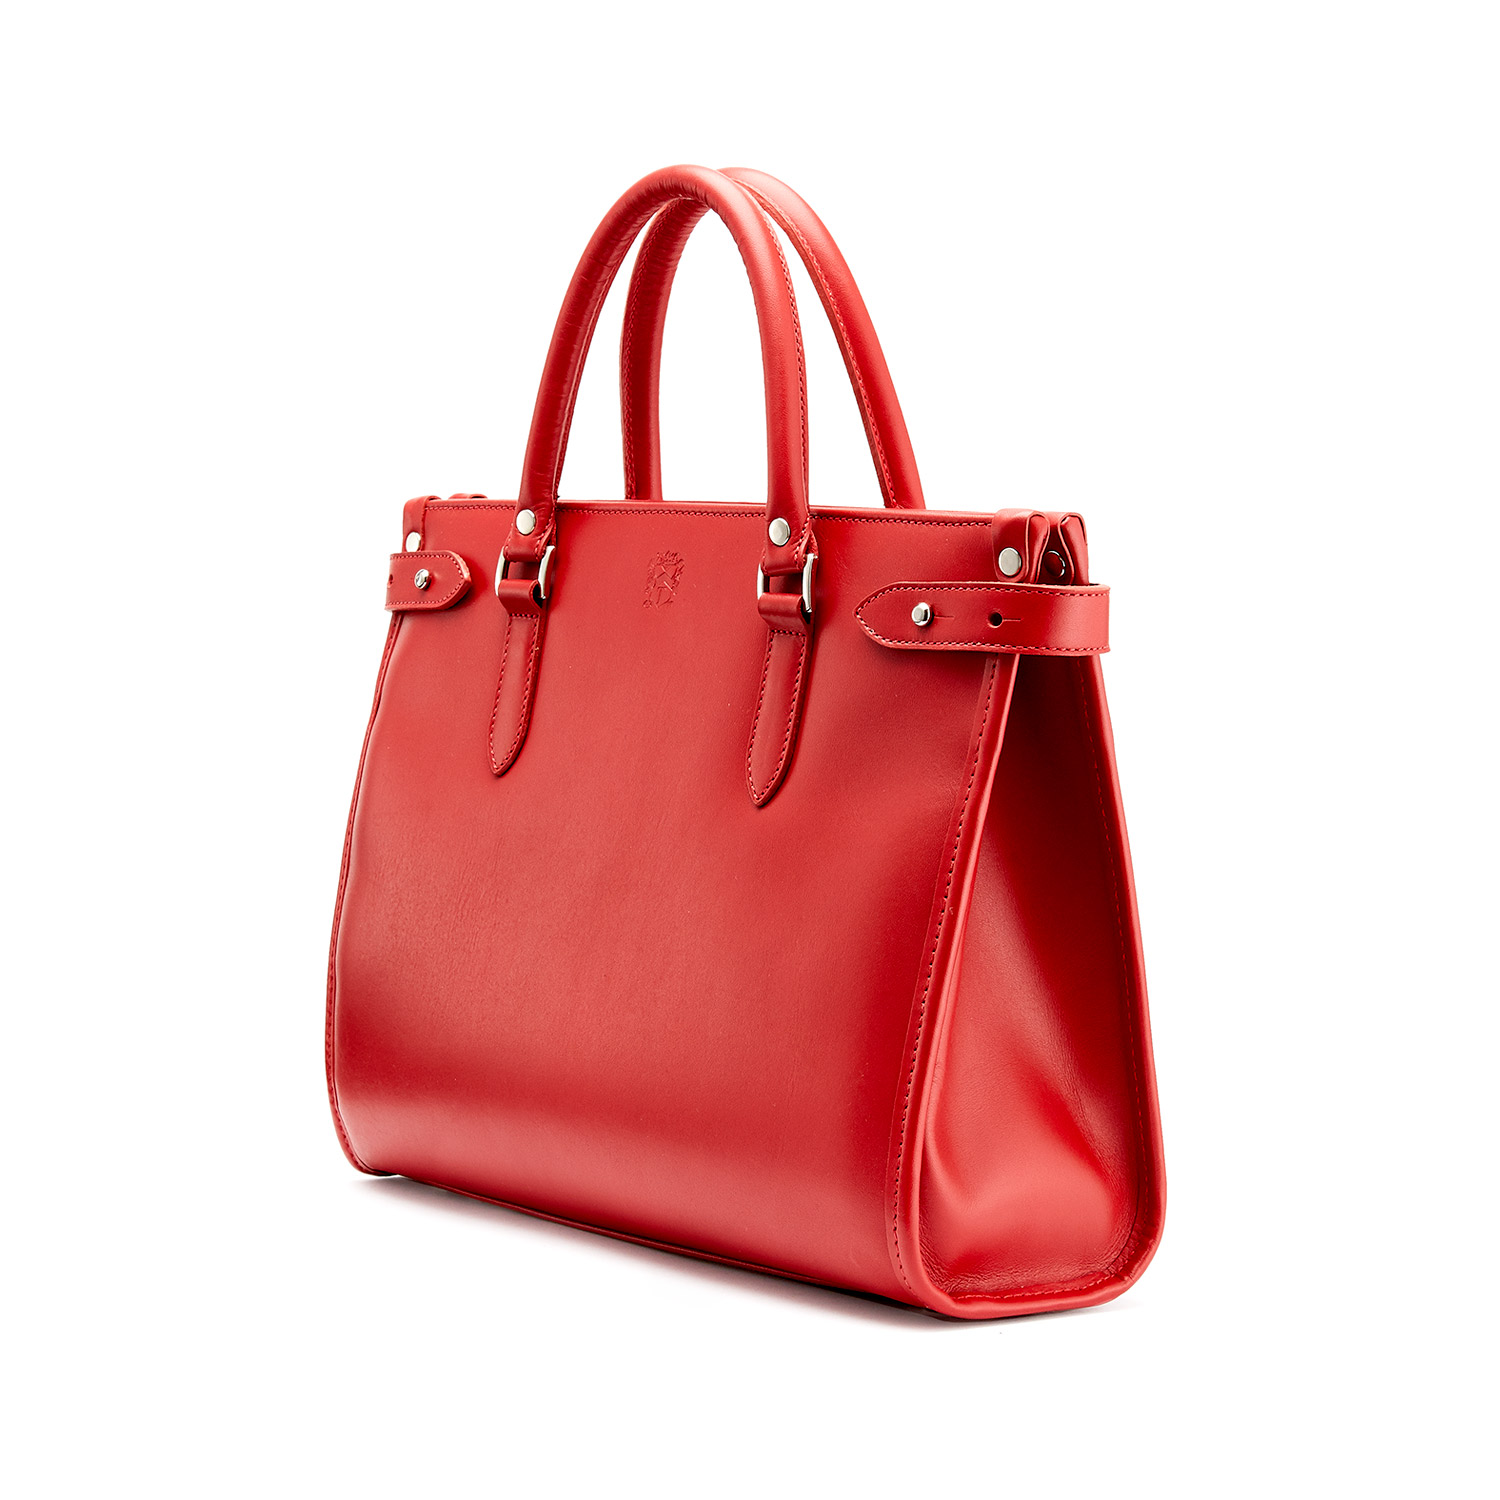 Tusting Kimbolton in Red Leather